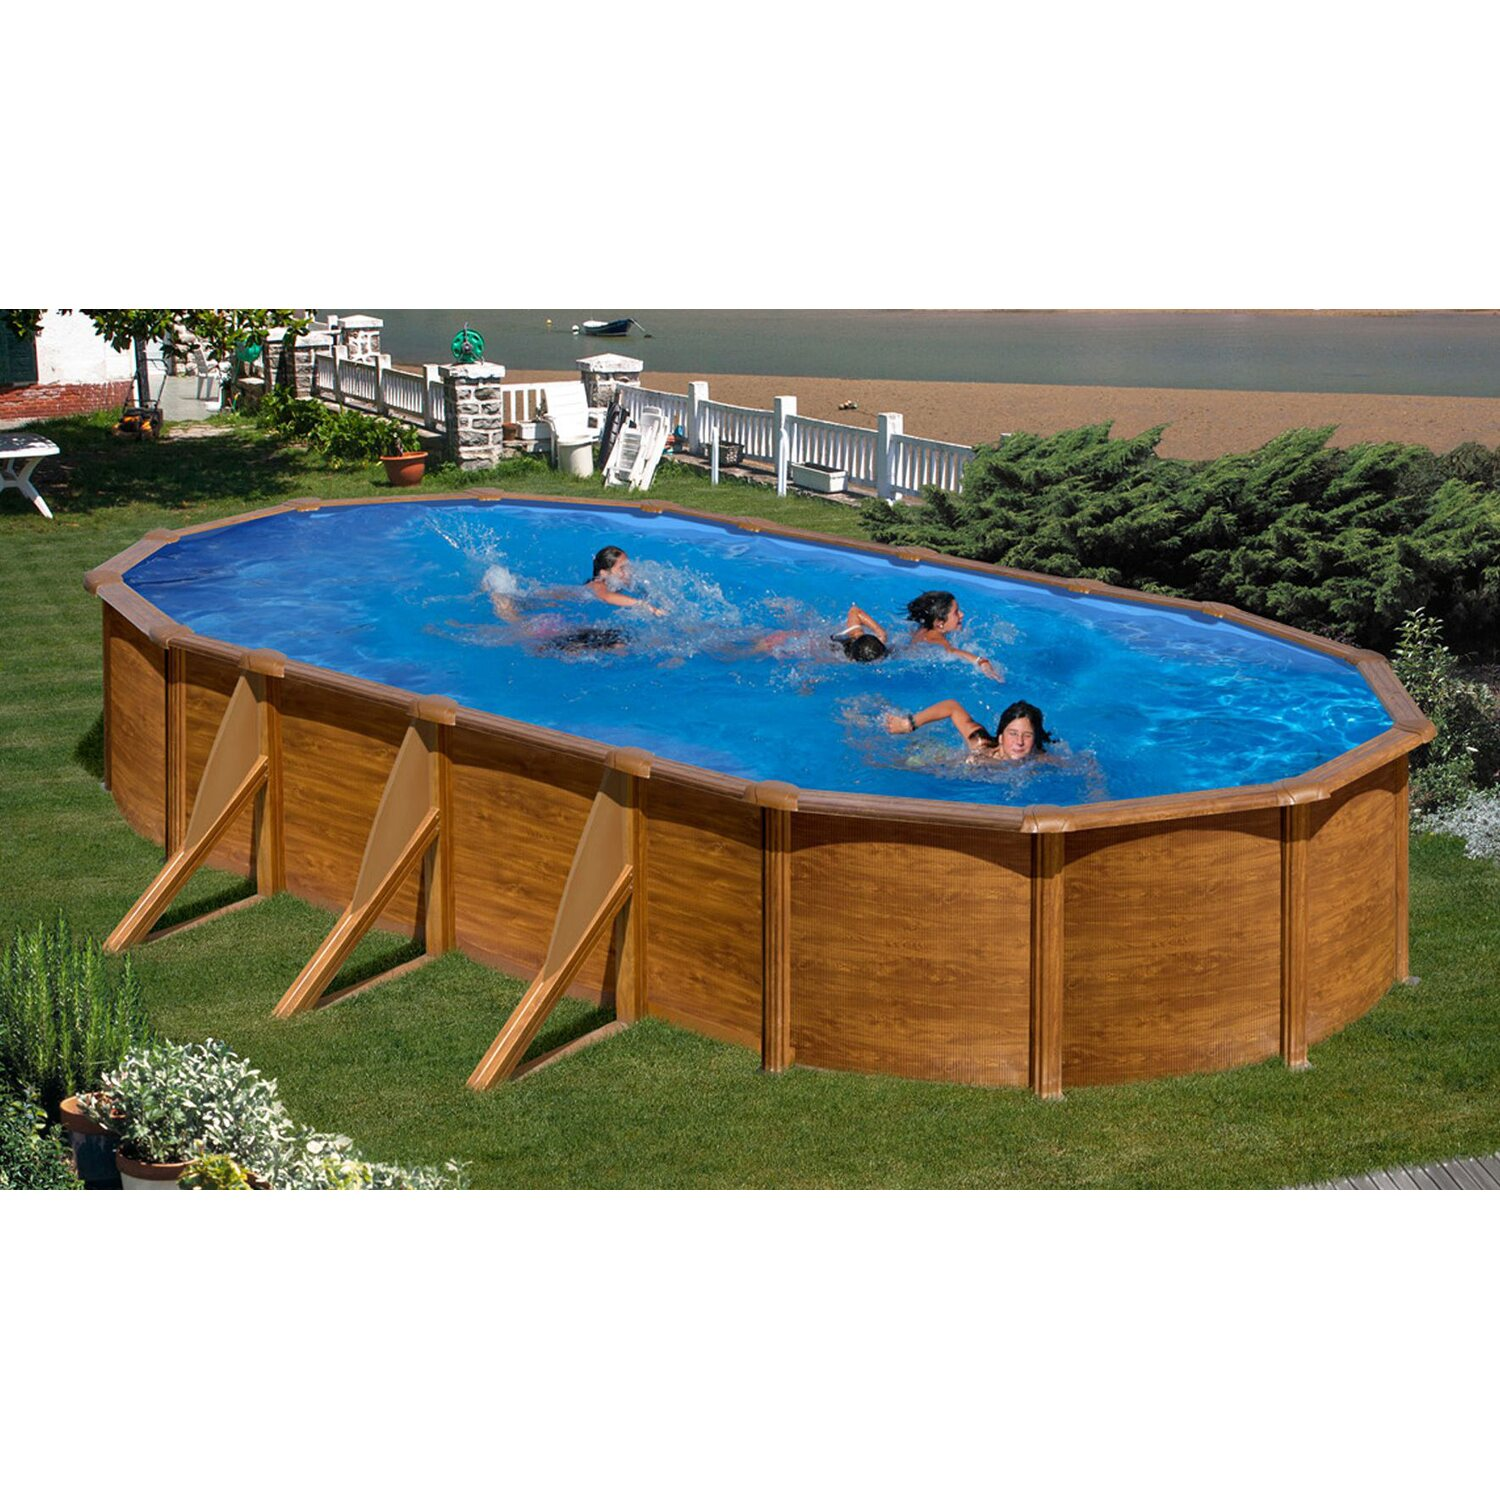 pool set holz dekor ravenna aufstellbecken oval 610 cm x. Black Bedroom Furniture Sets. Home Design Ideas